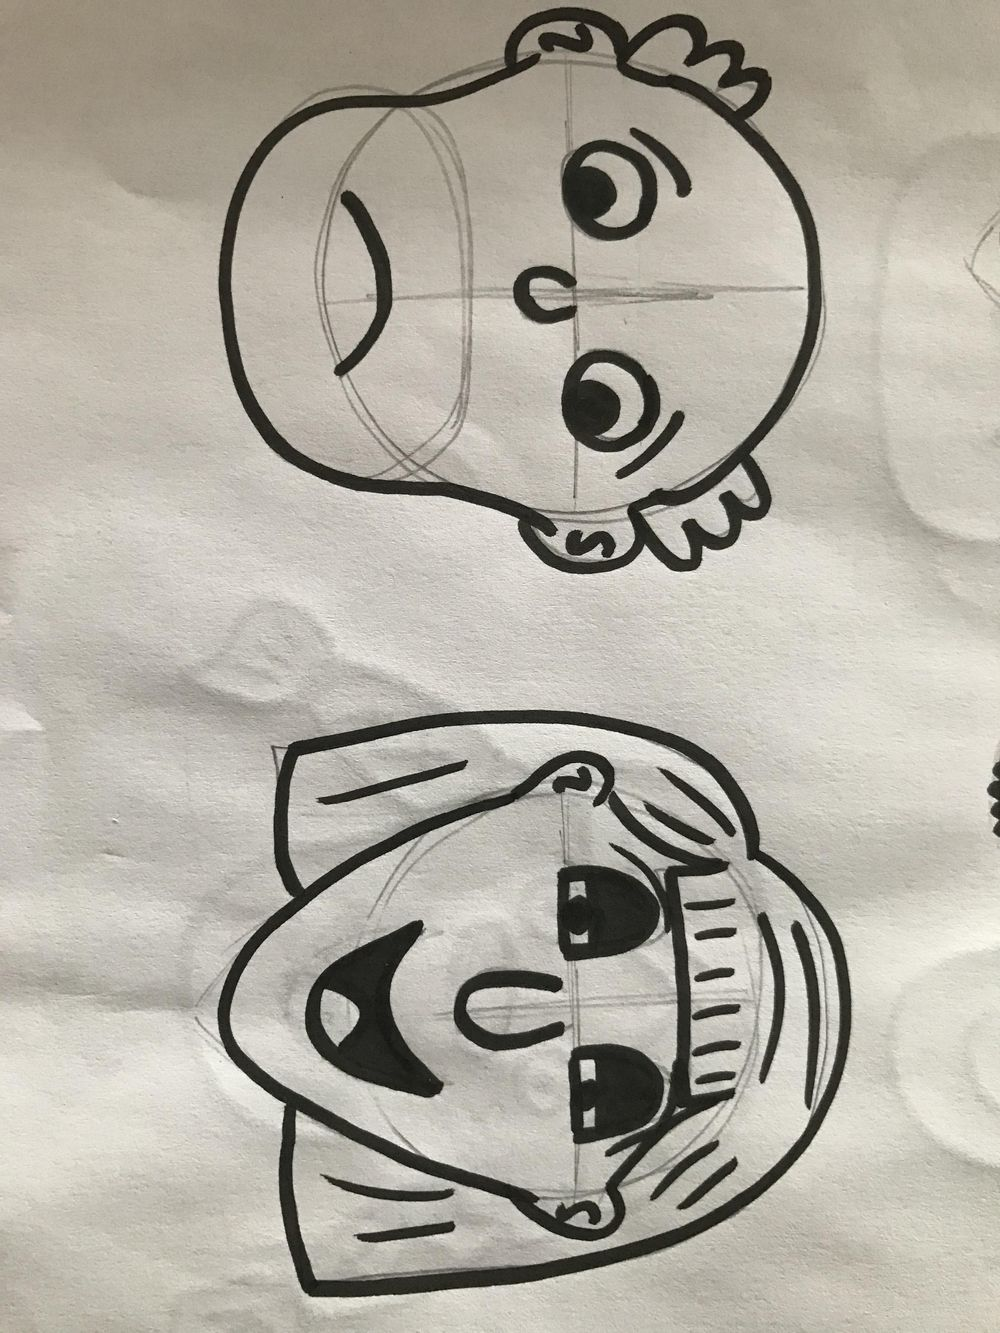 Cartooning, self portraits and stuff - image 6 - student project